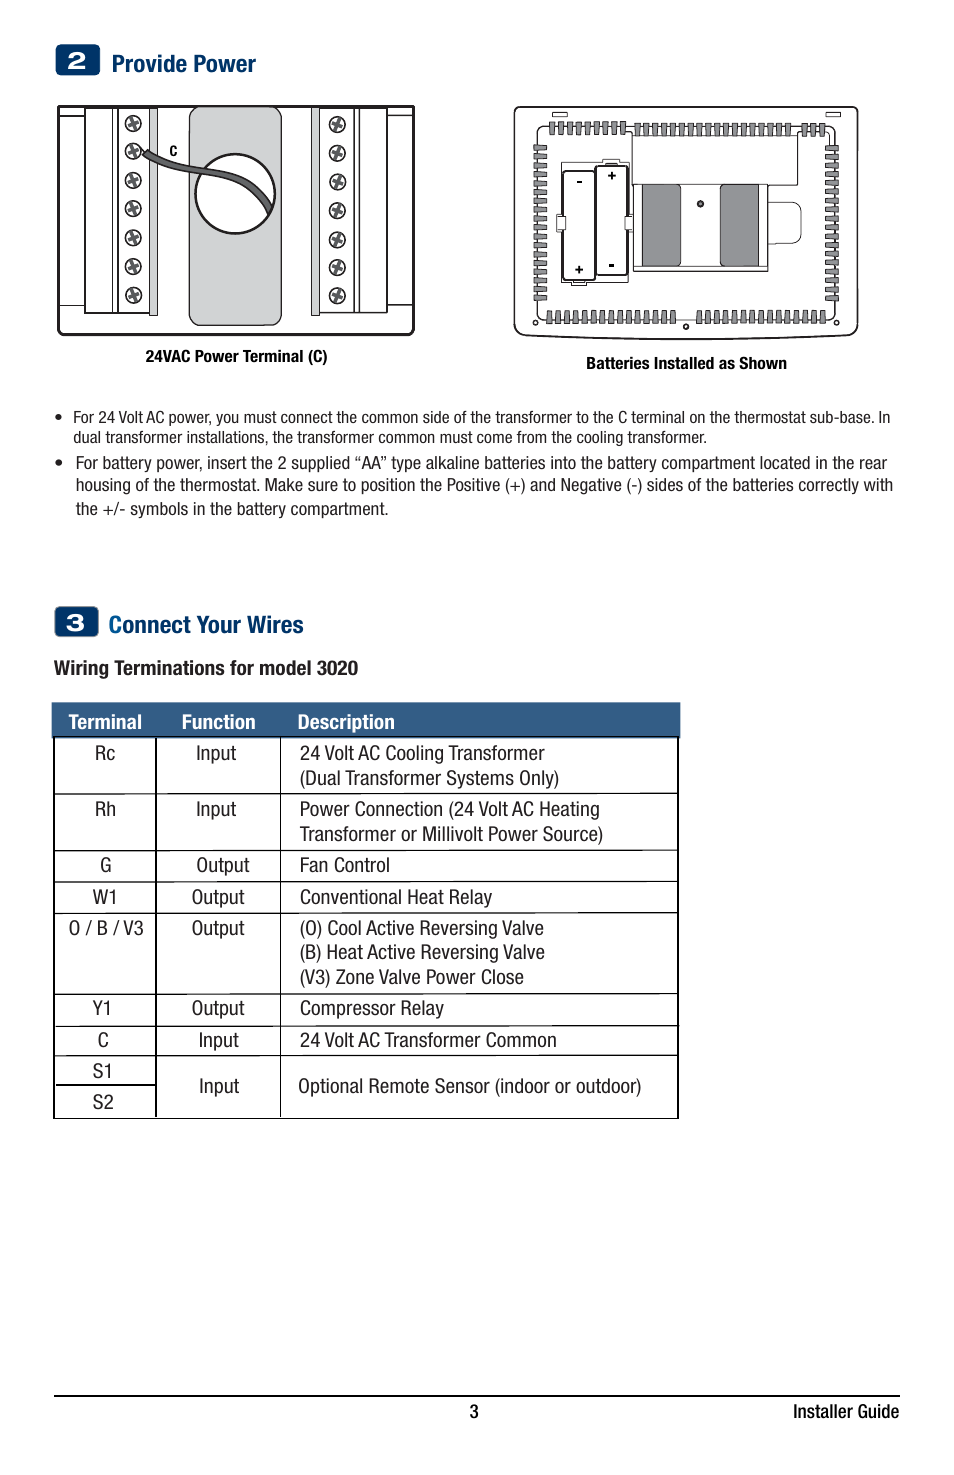 Provide Power C Onnect Your Wires 3 Braeburn 3220 Installer Guide Ac Transformer Wiring User Manual Page 13